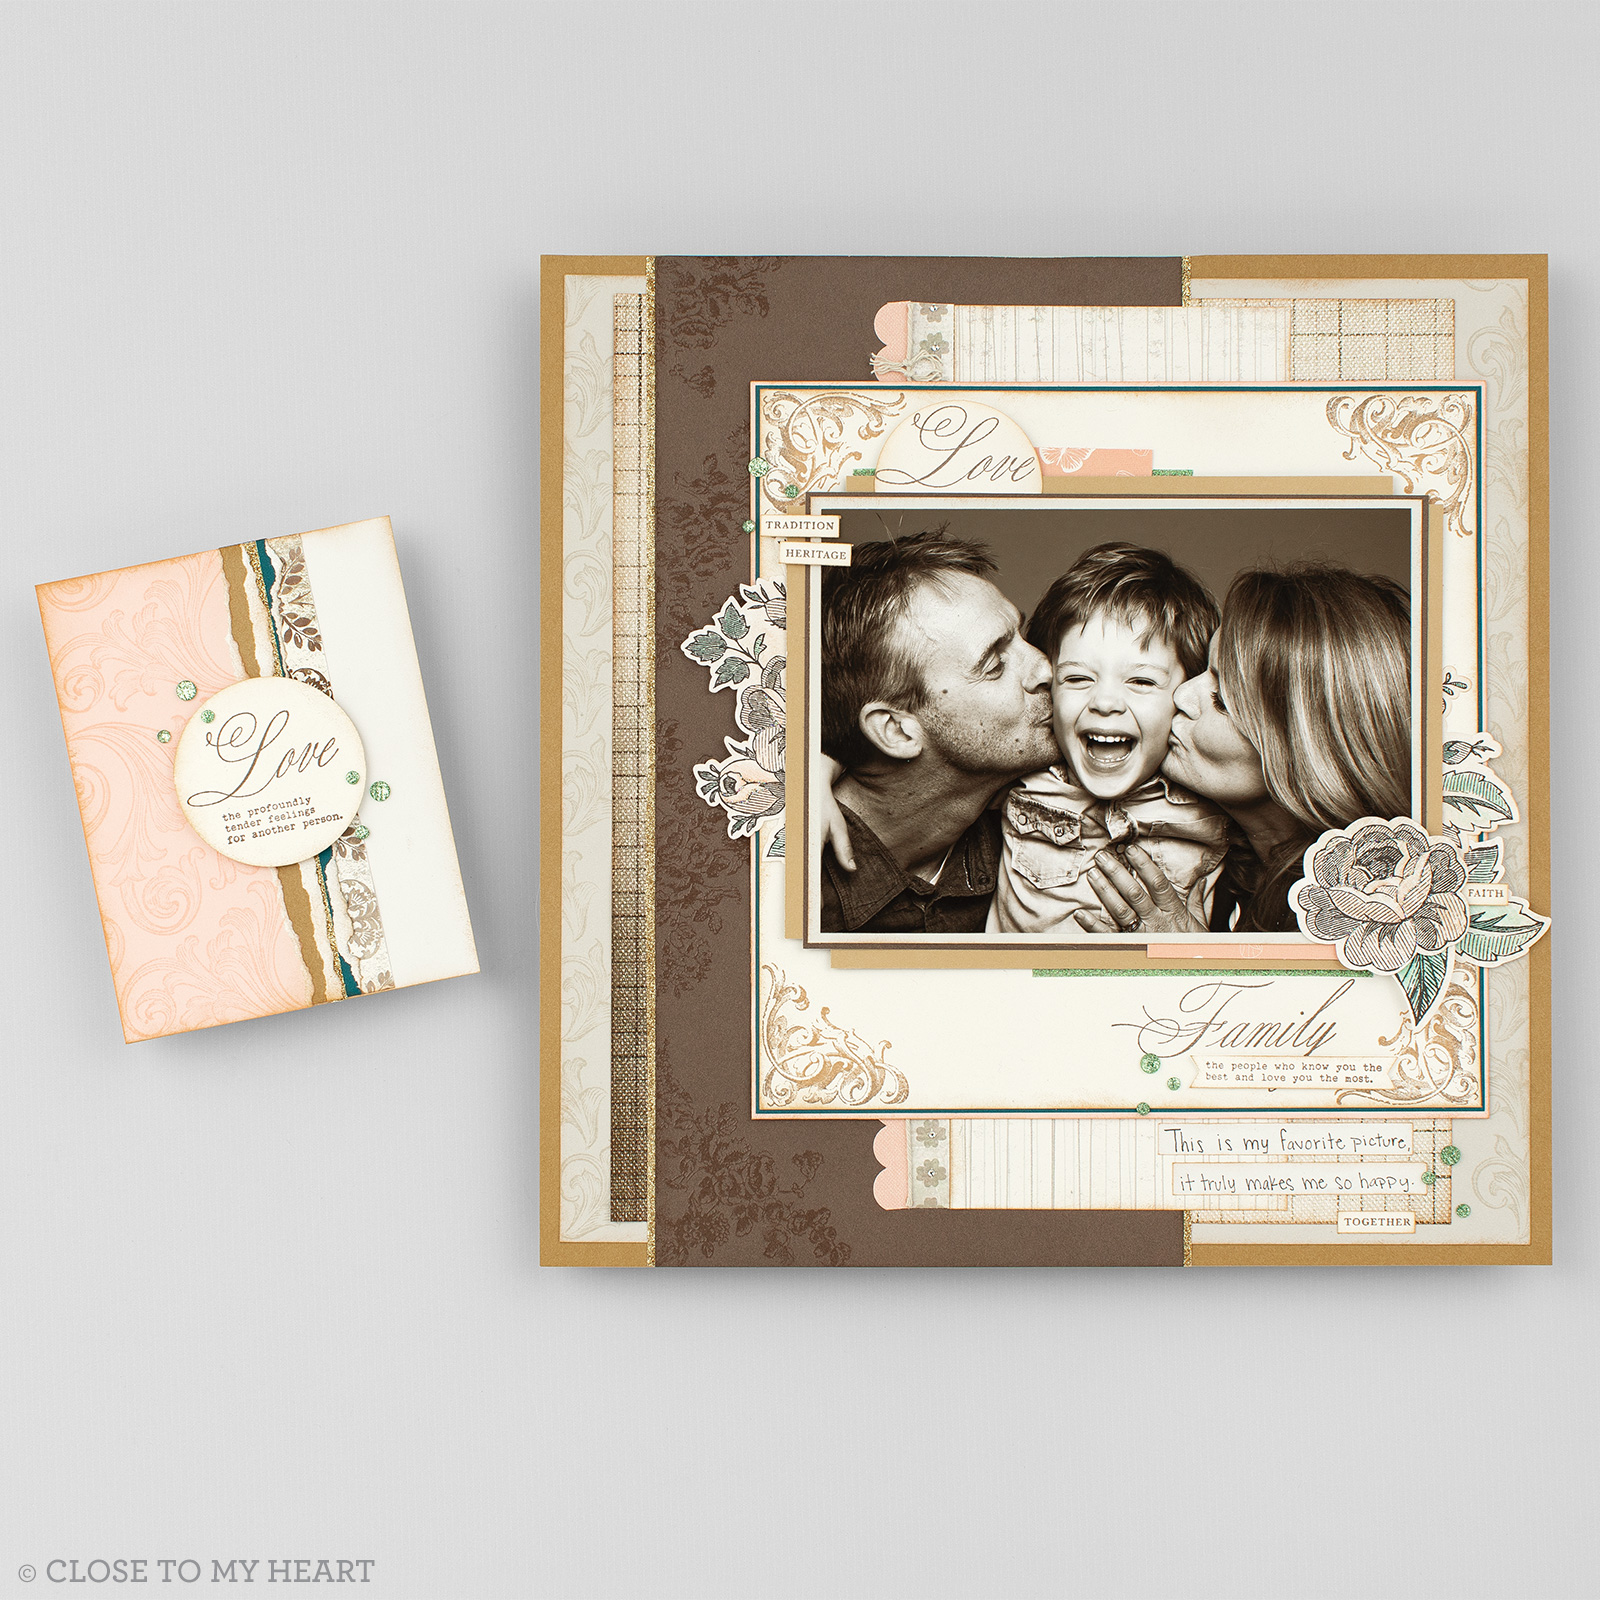 CTMH Family Legacy Stamp of the Month Layout & Card